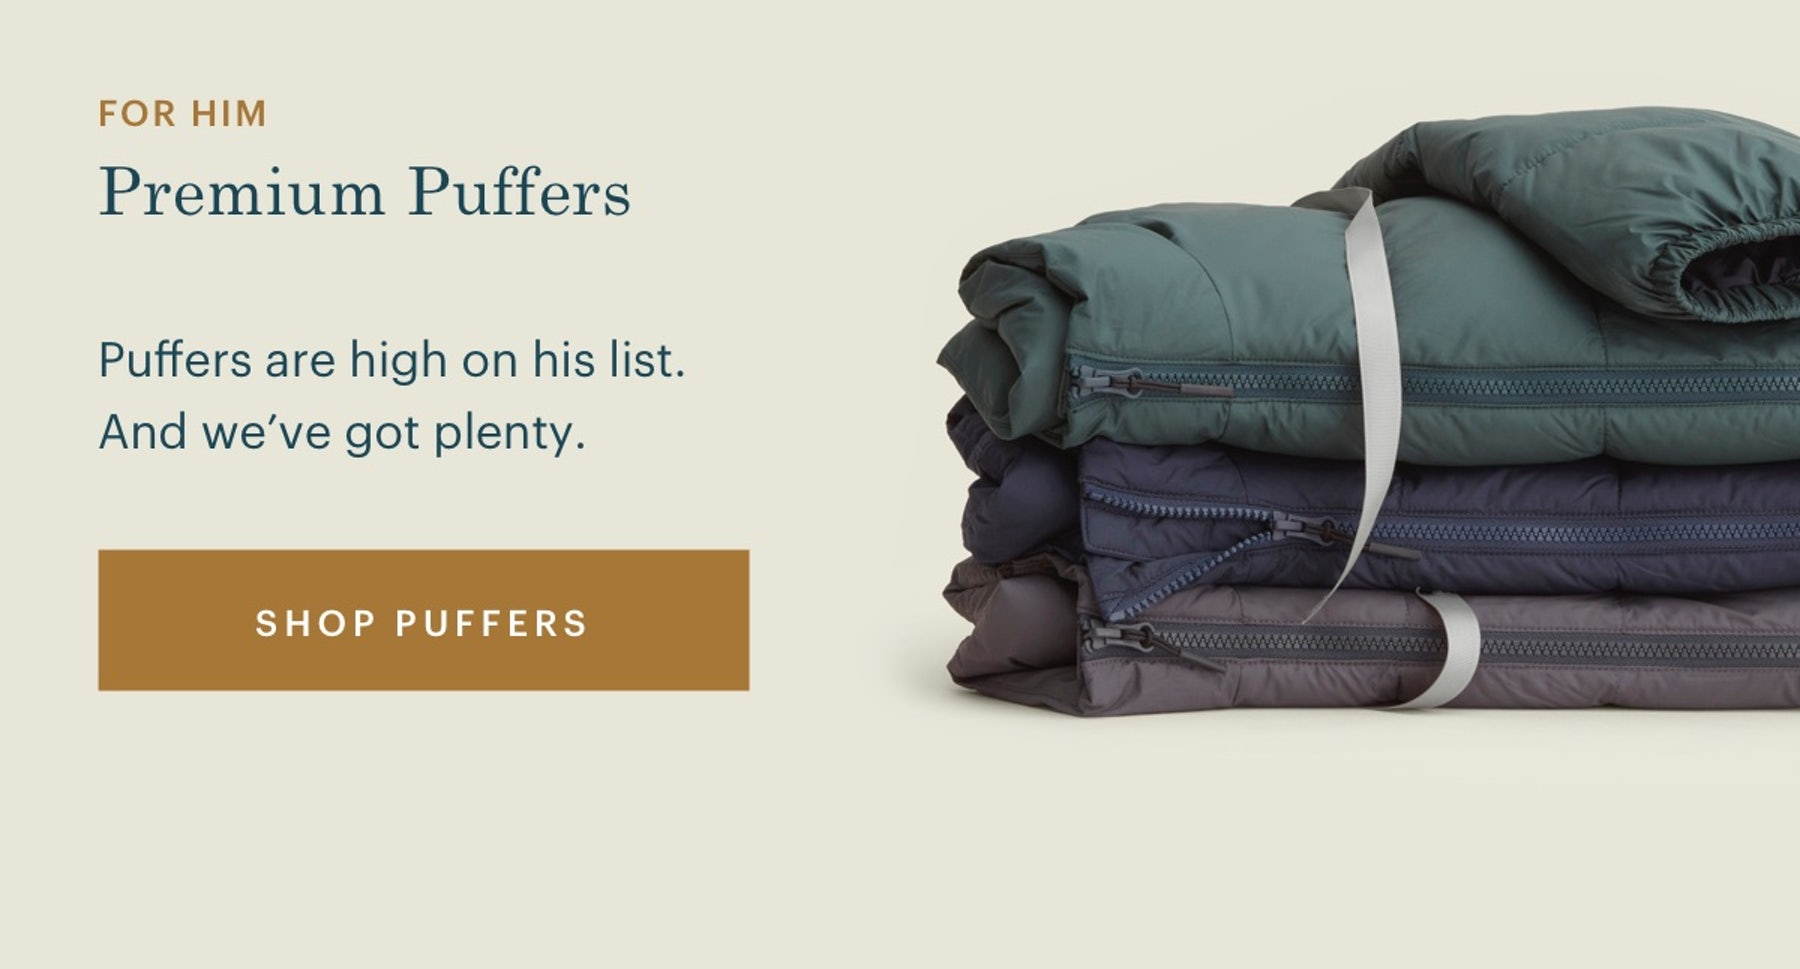 Premium Puffers. Puffers are high on his list. And we've got plenty.